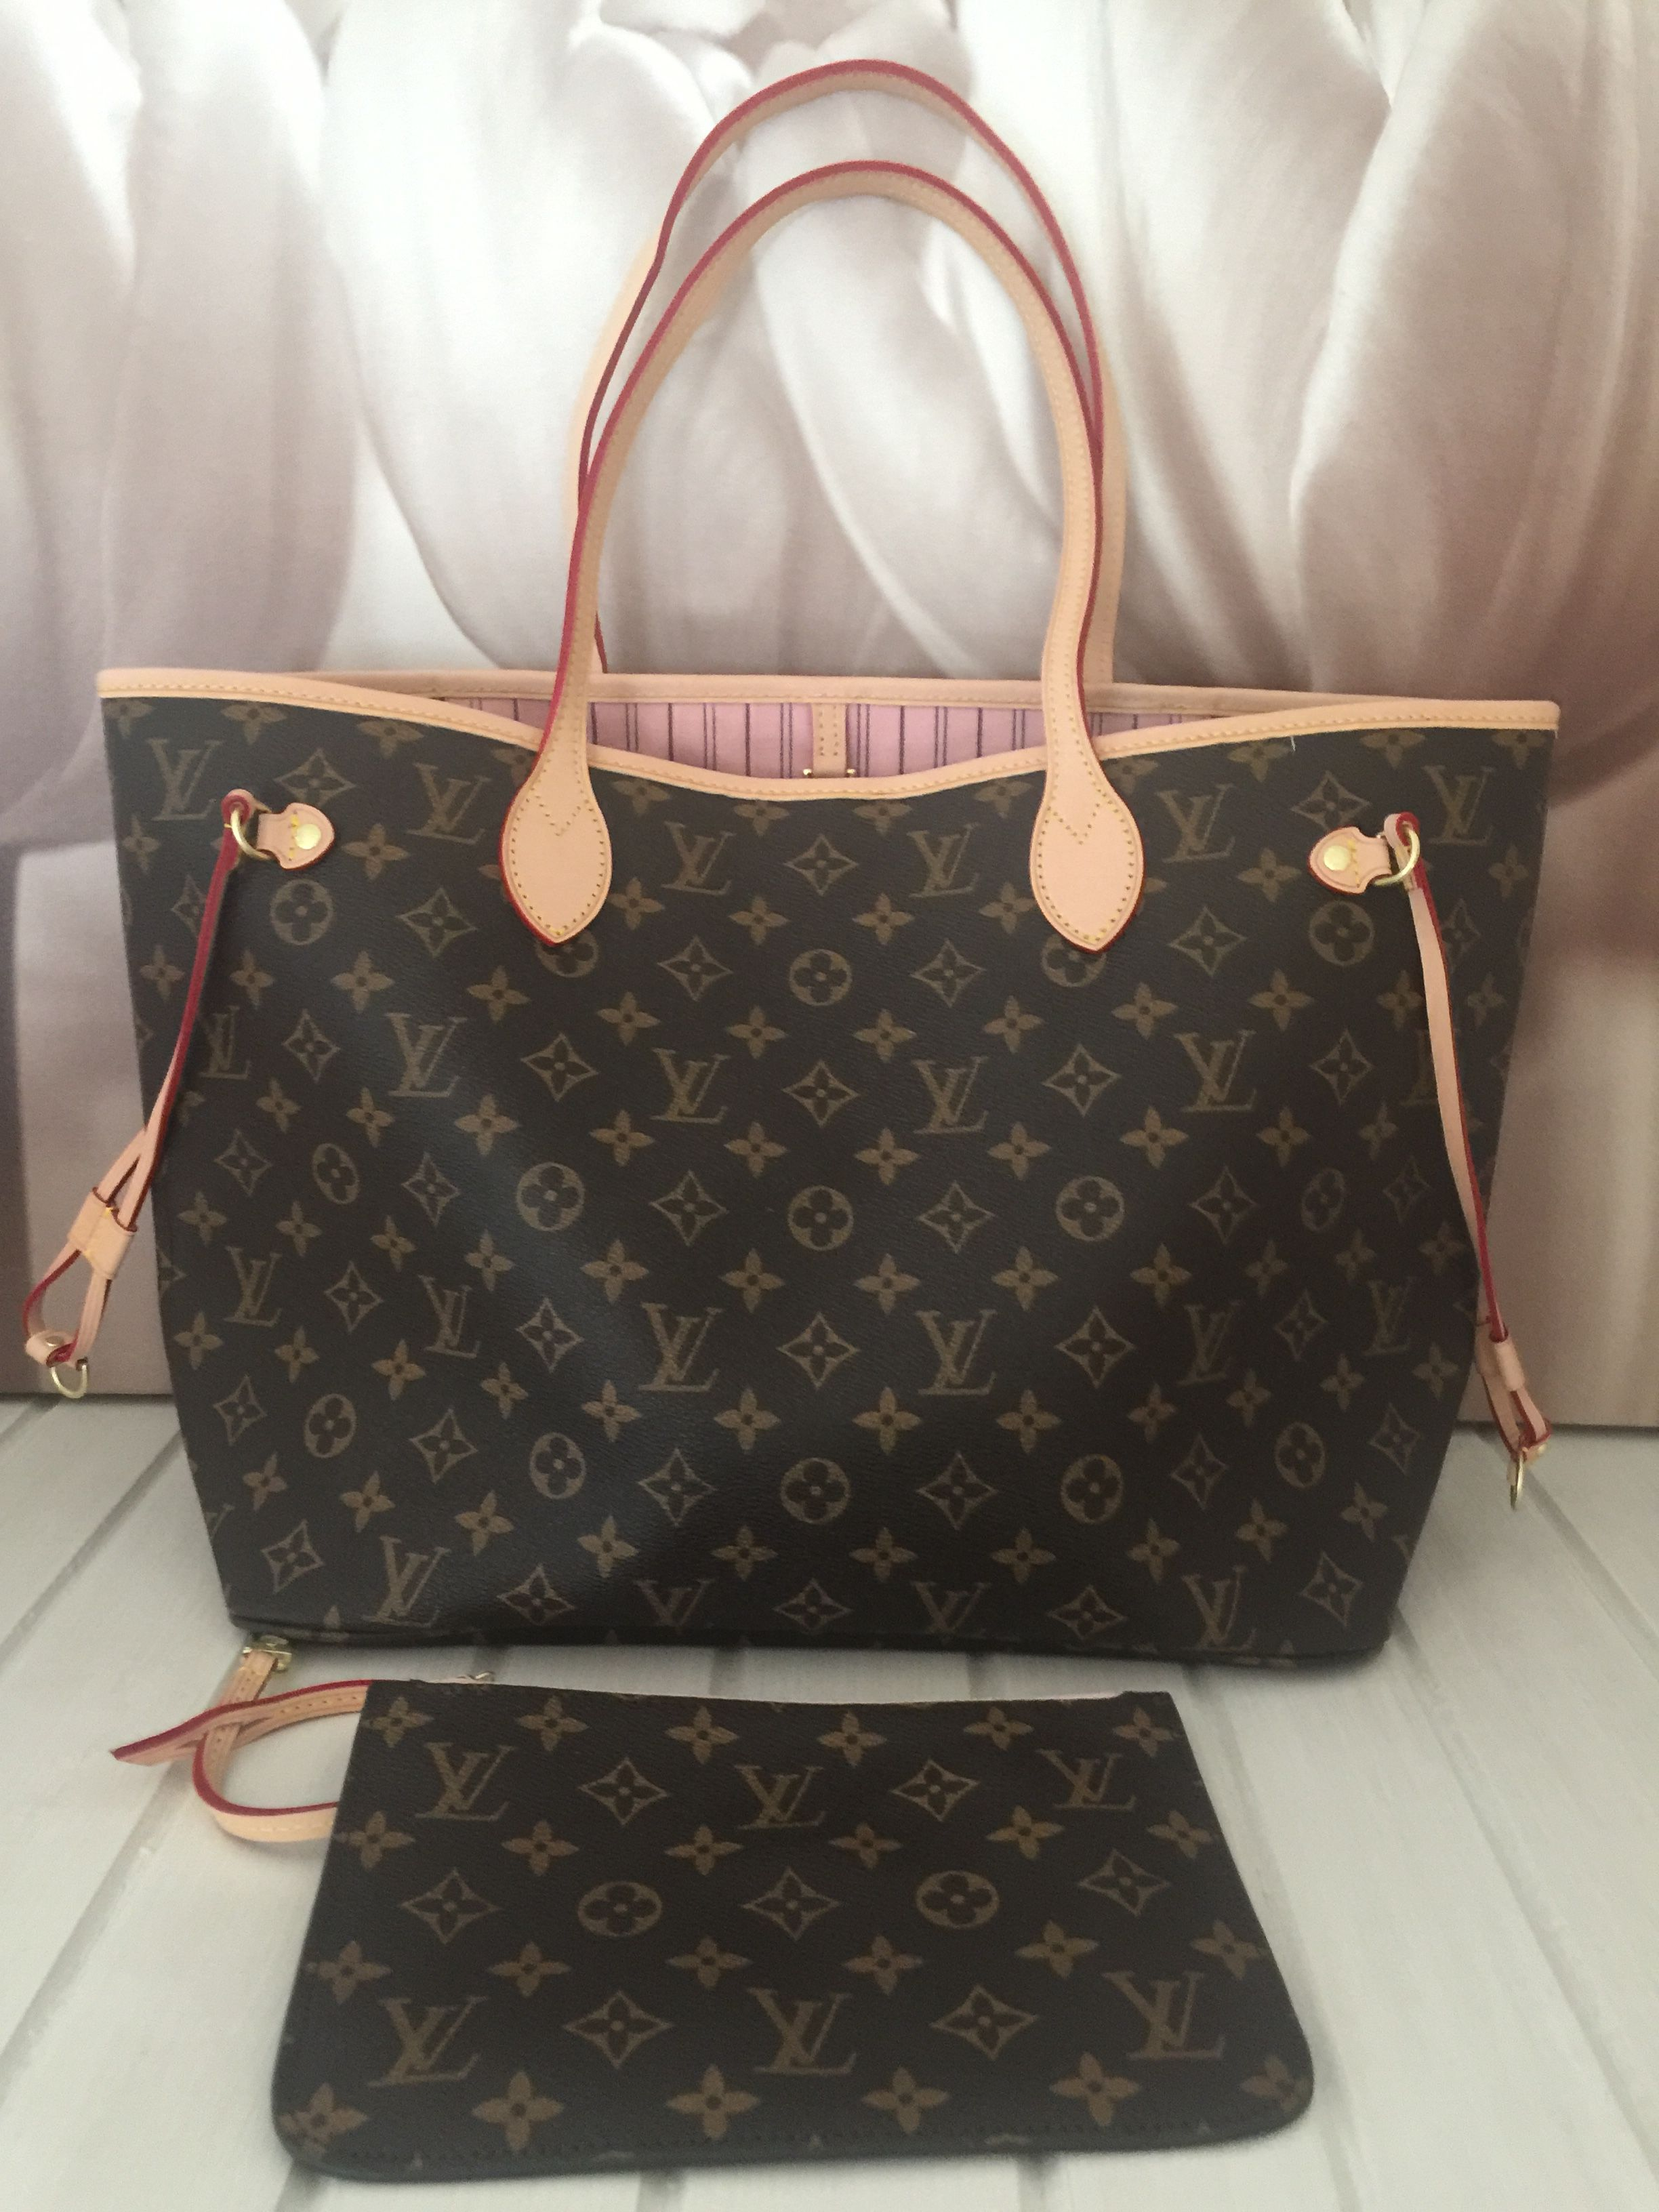 38a661d69c94 My Louis Vuitton Neverfull monogram and rose ballerine ❤